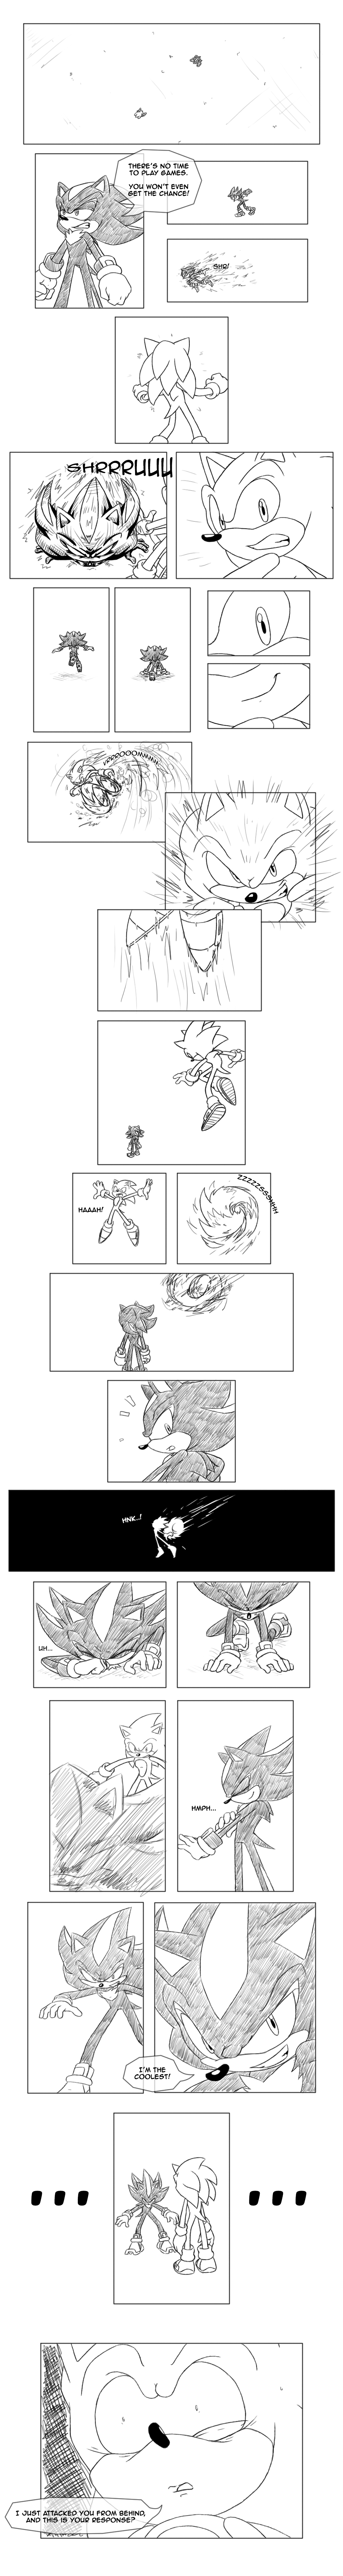 Sonic Adventure 2 - Sonic and Shadow Battle by Tri-Jean